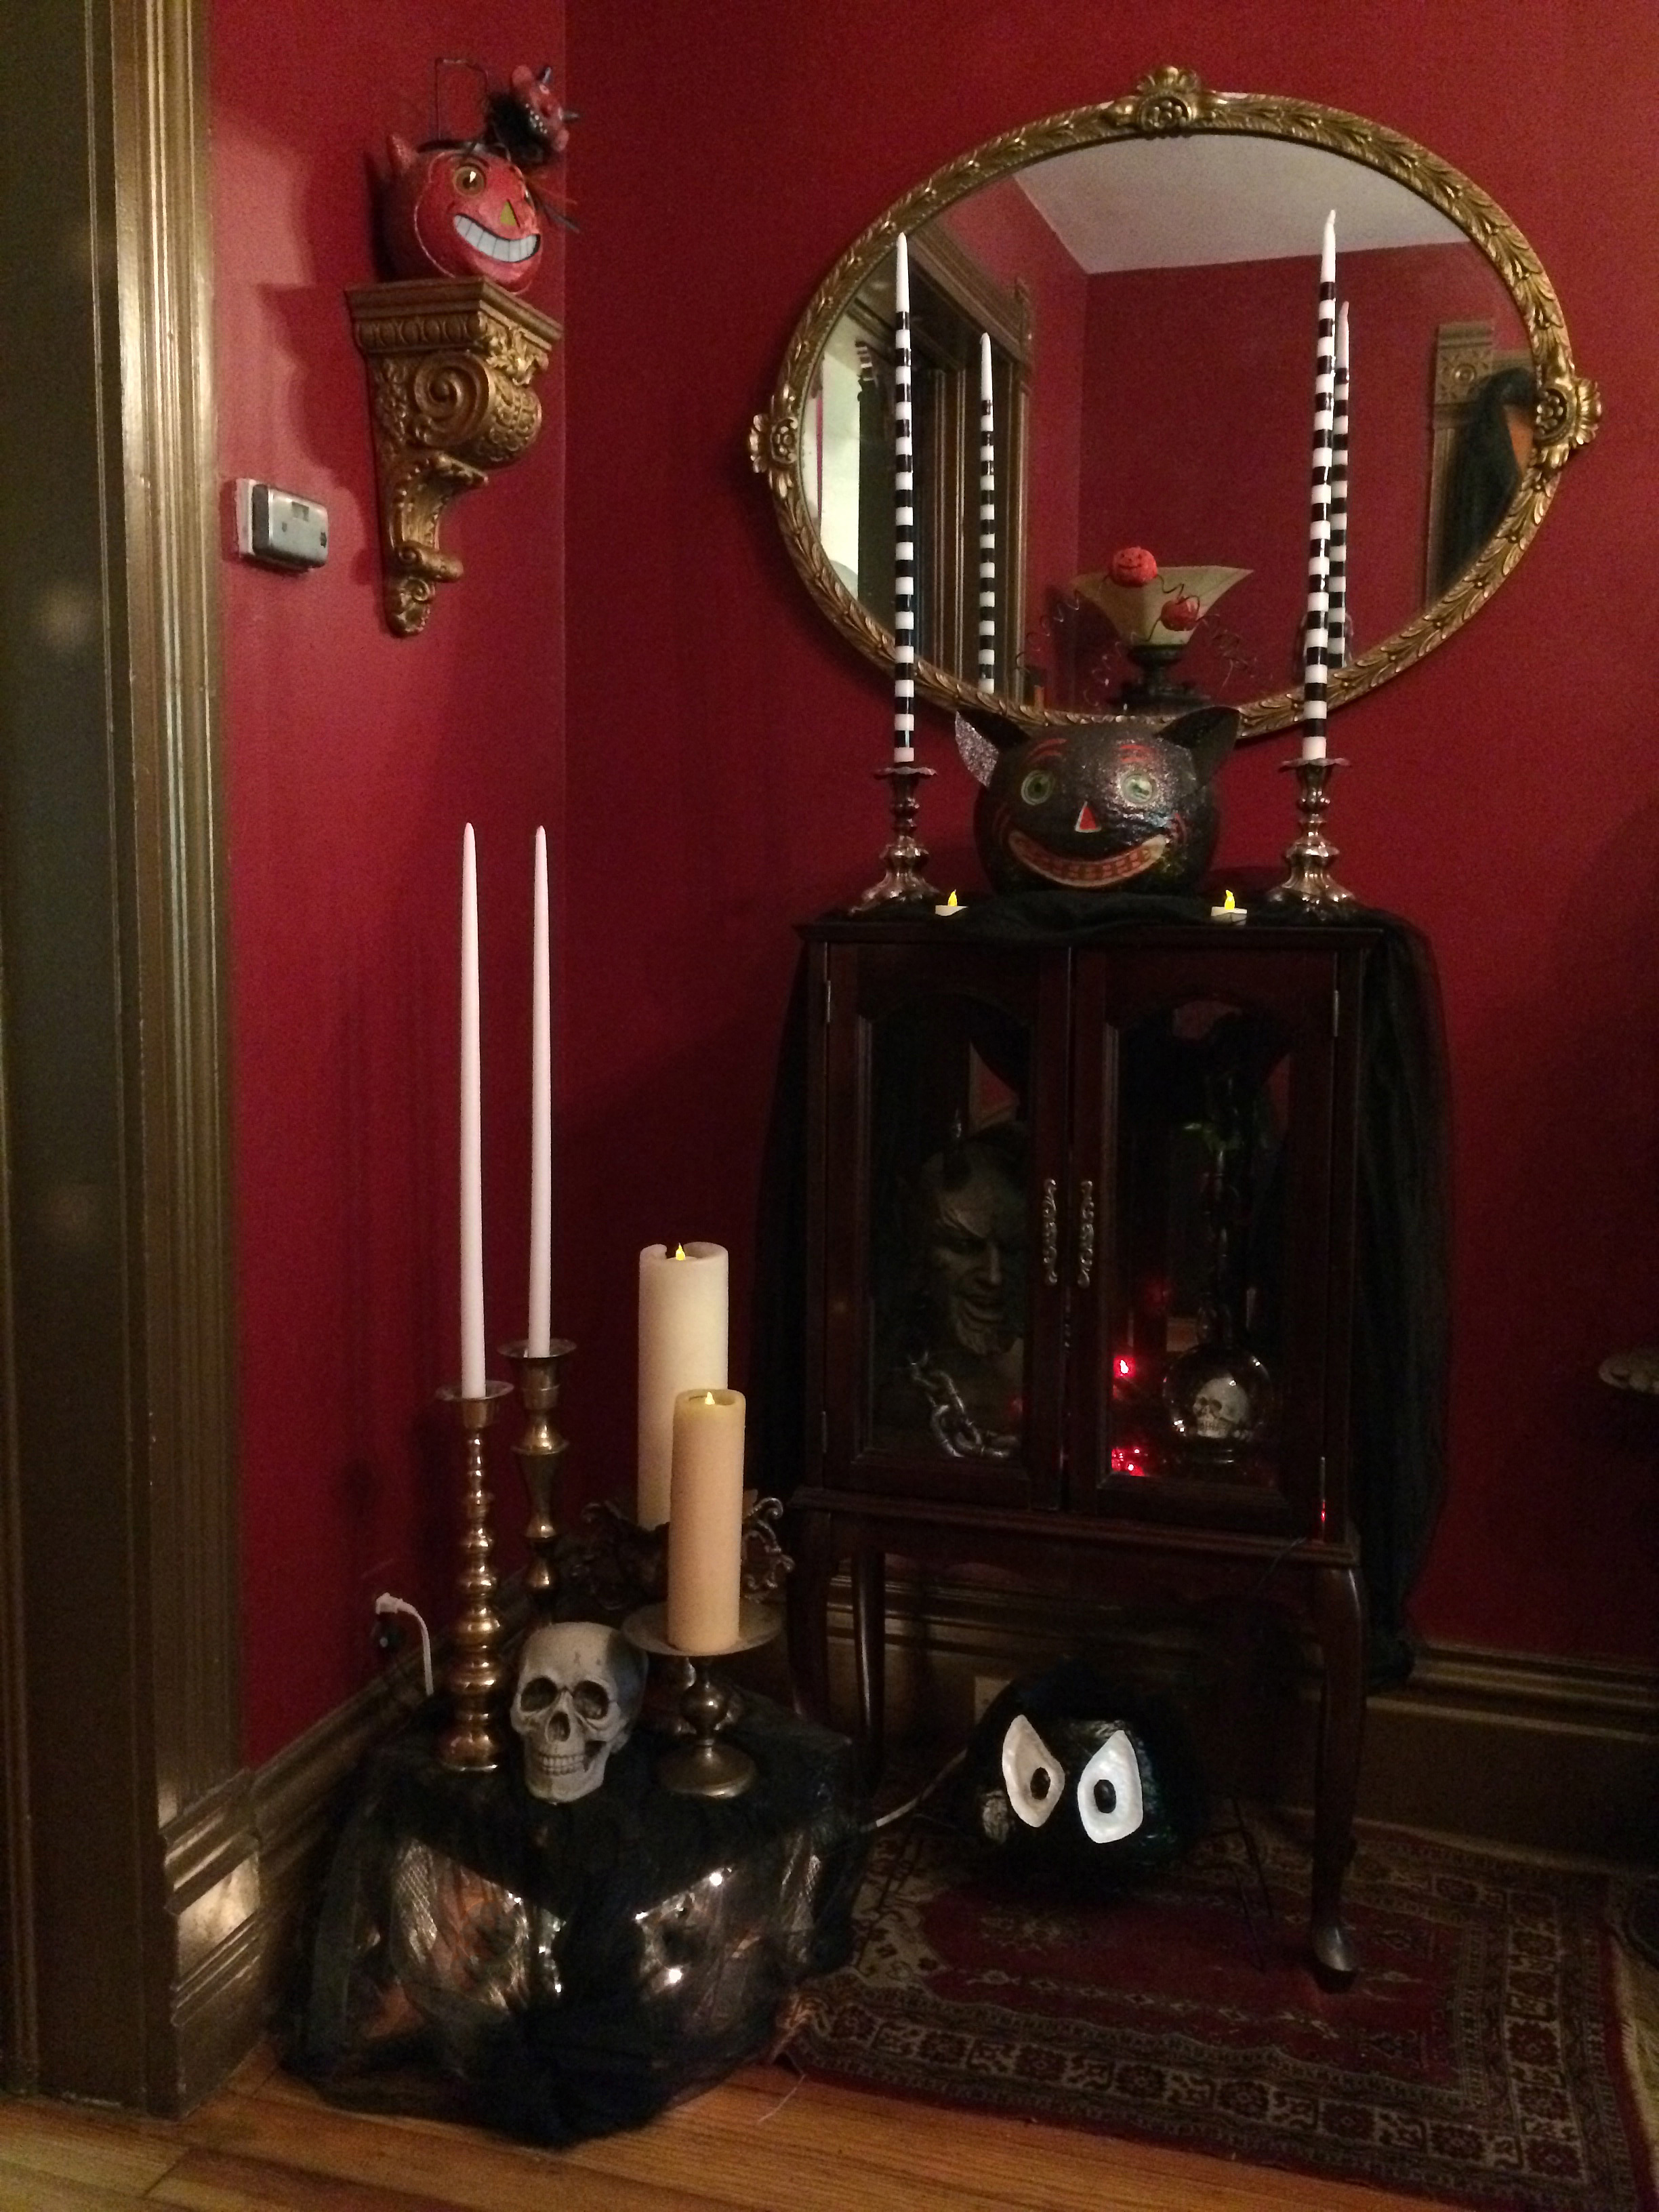 Cute Girly Wallpaper For Bedroom Simple And Easy Gothic Halloween Decorations